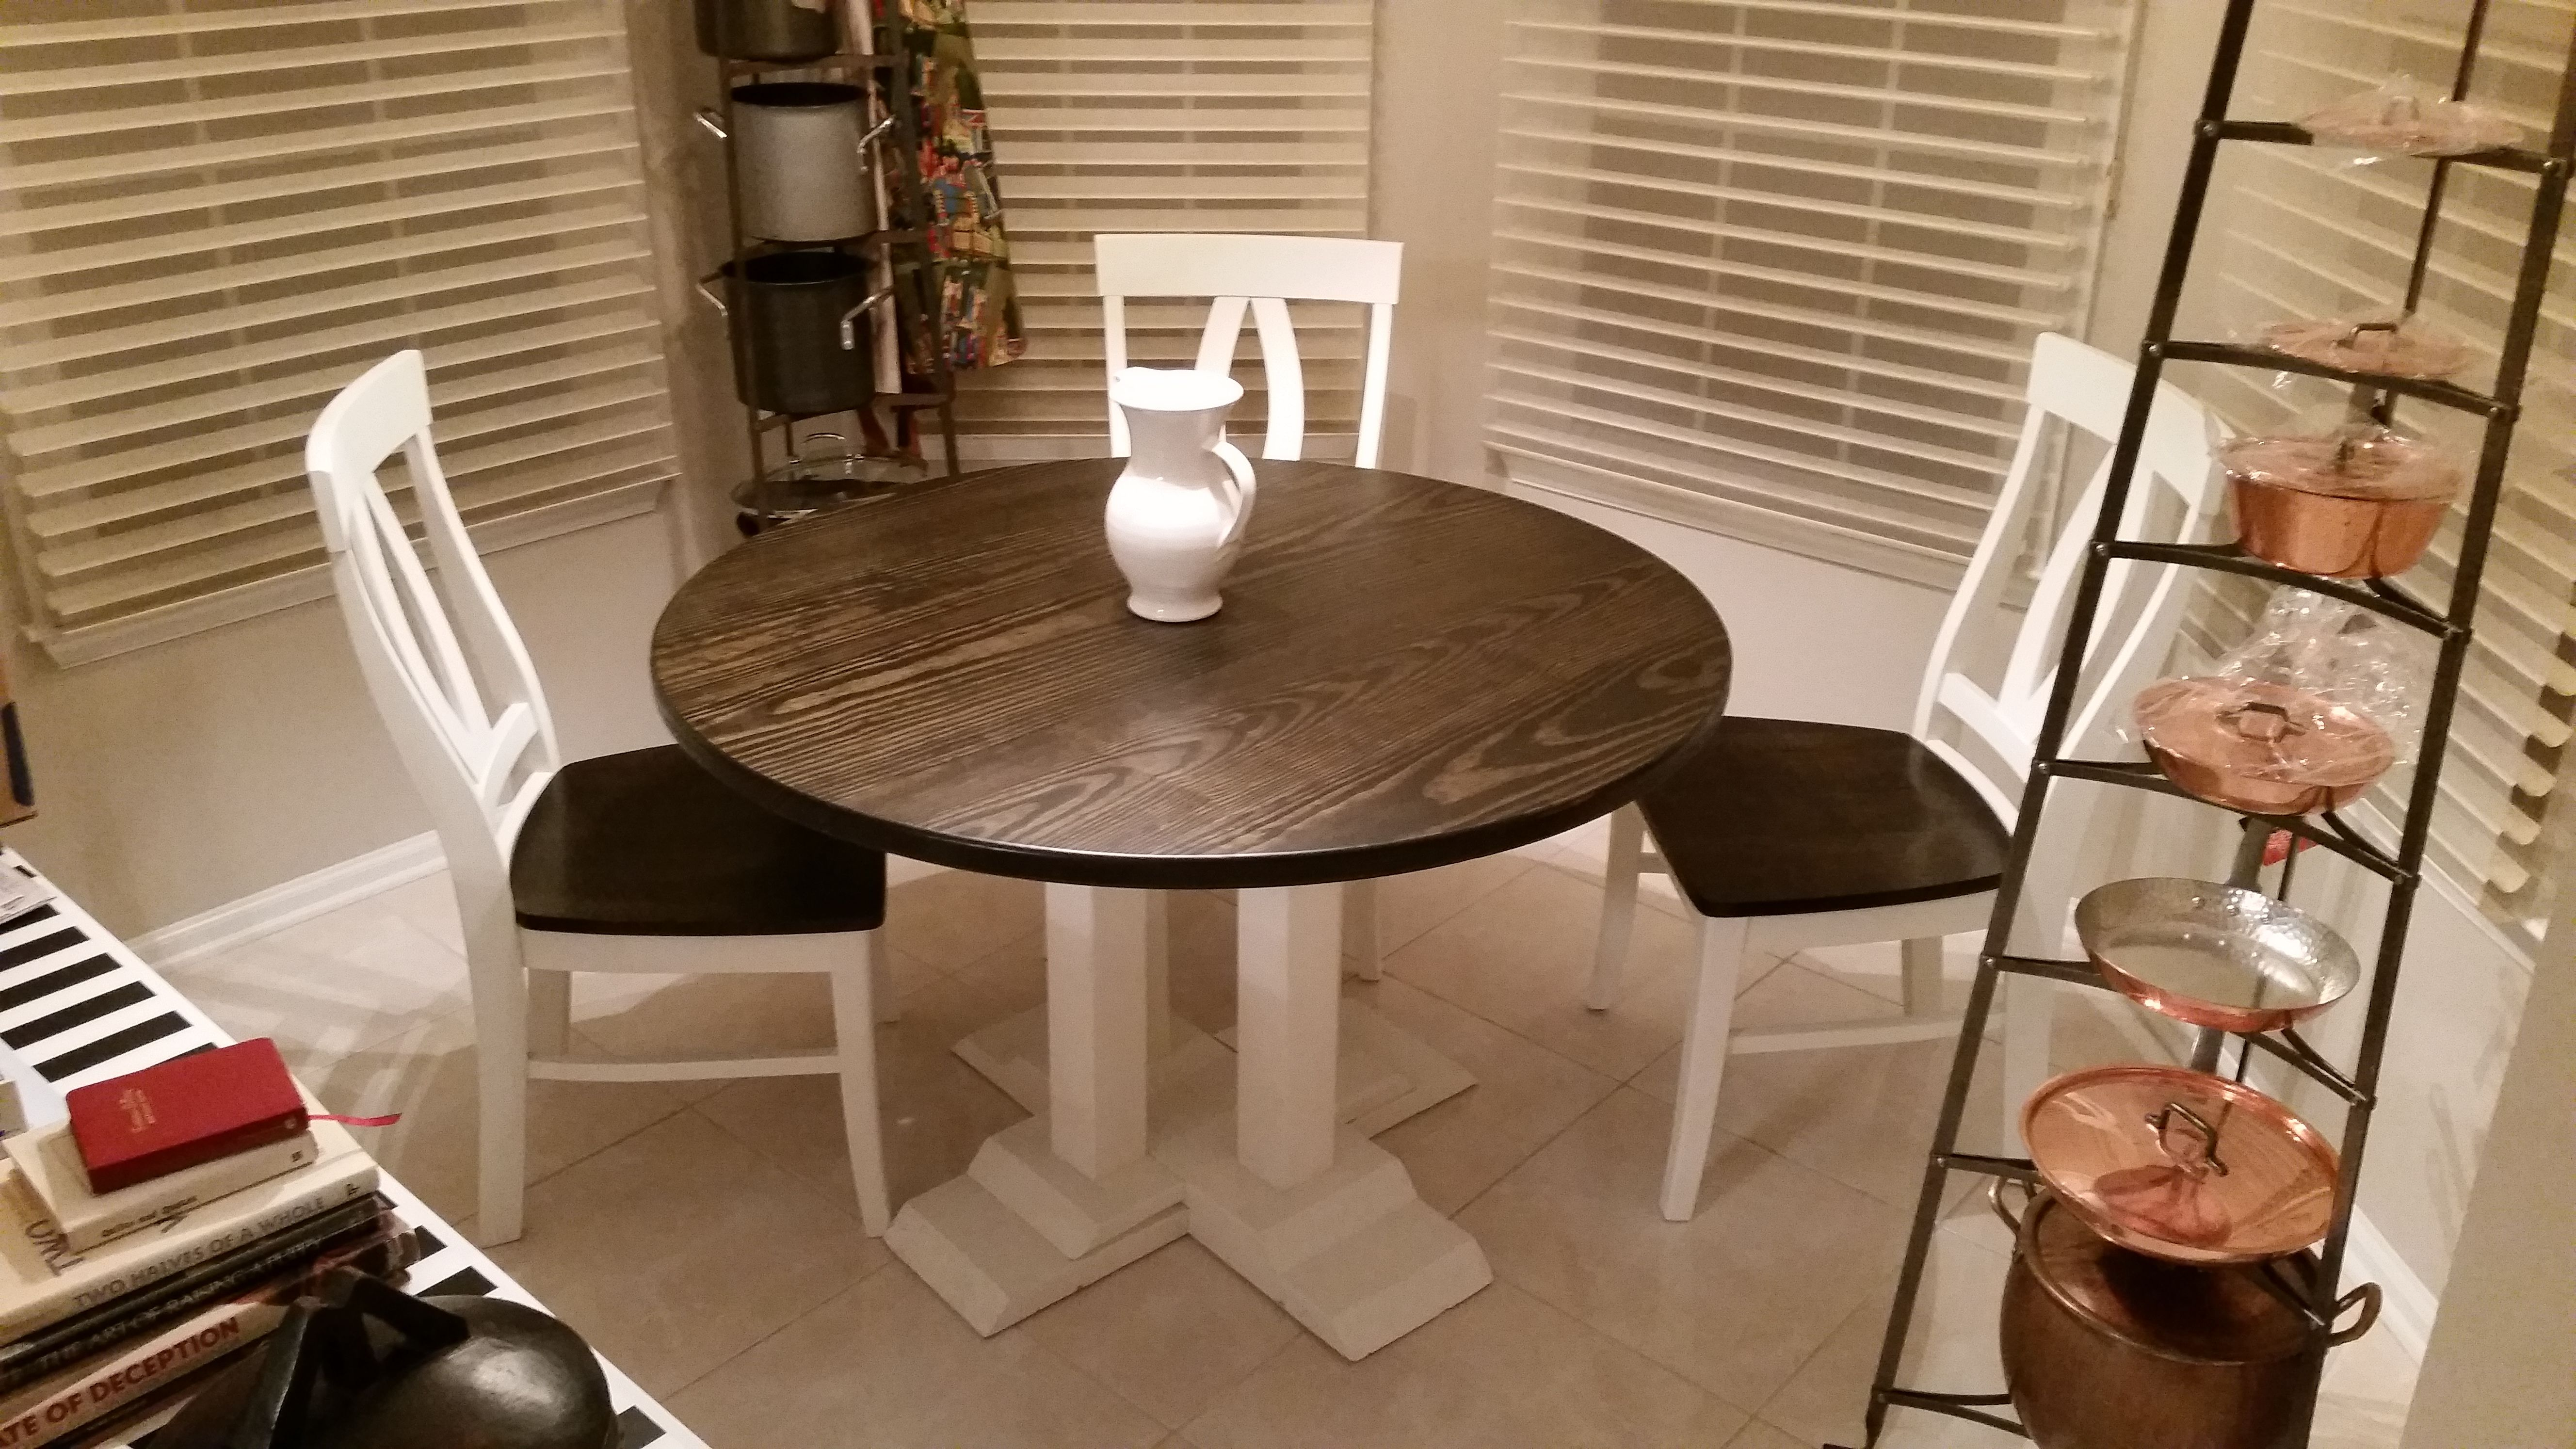 Painted round dining table  Built and finished by hand at JamesJames the Round Farmhouse Table